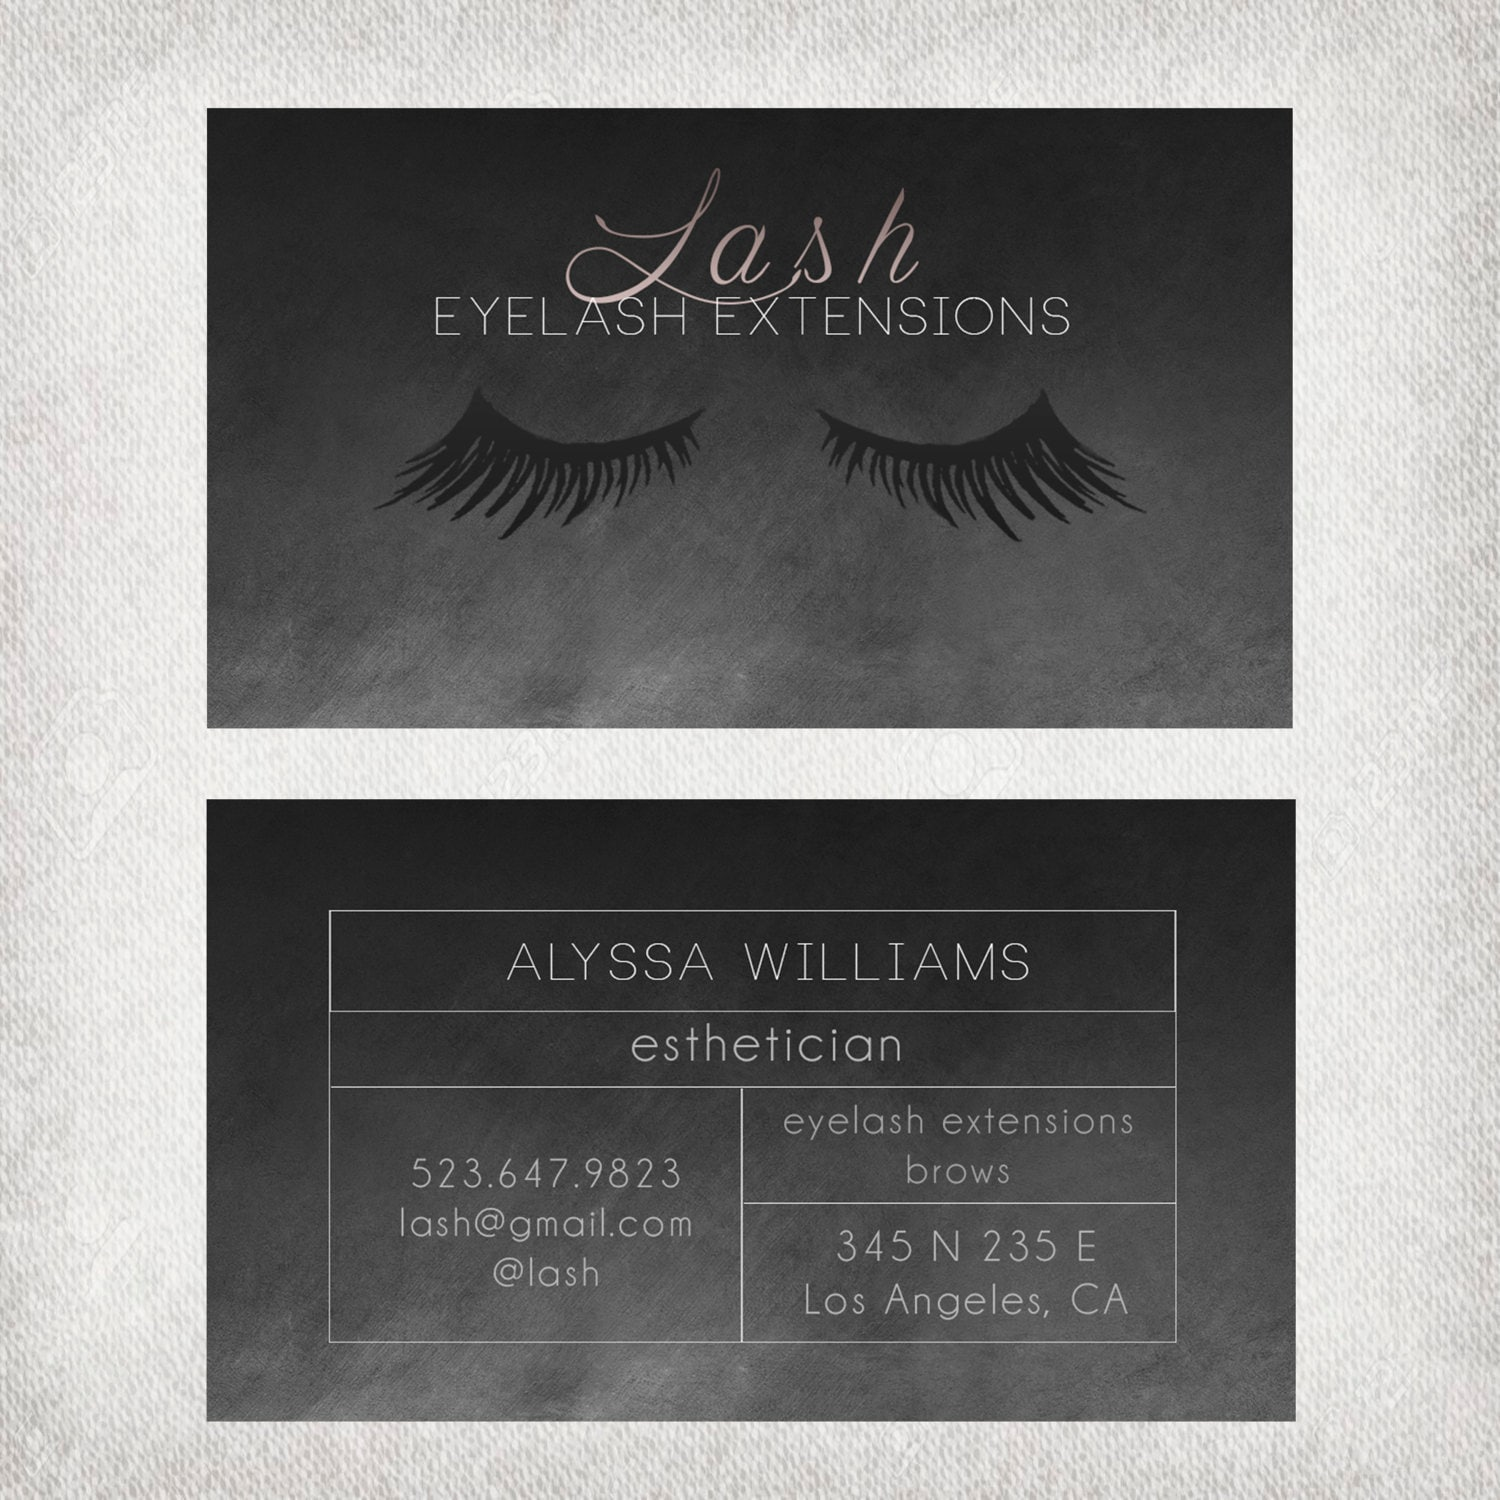 Eyelash extensions business card design file only zoom magicingreecefo Image collections